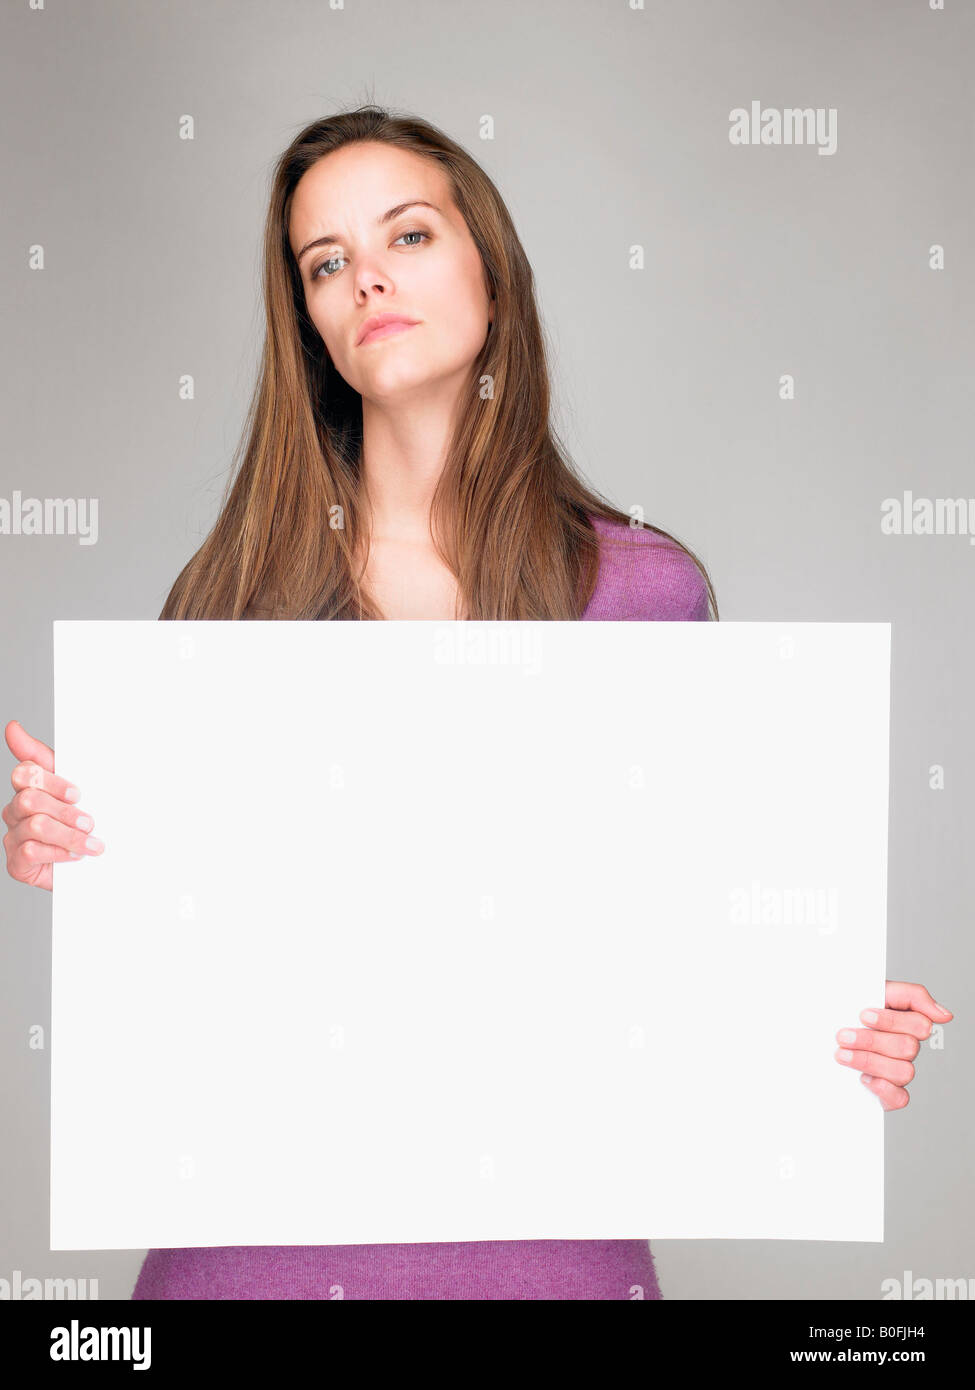 Woman carrying a notice, smiling - Stock Image